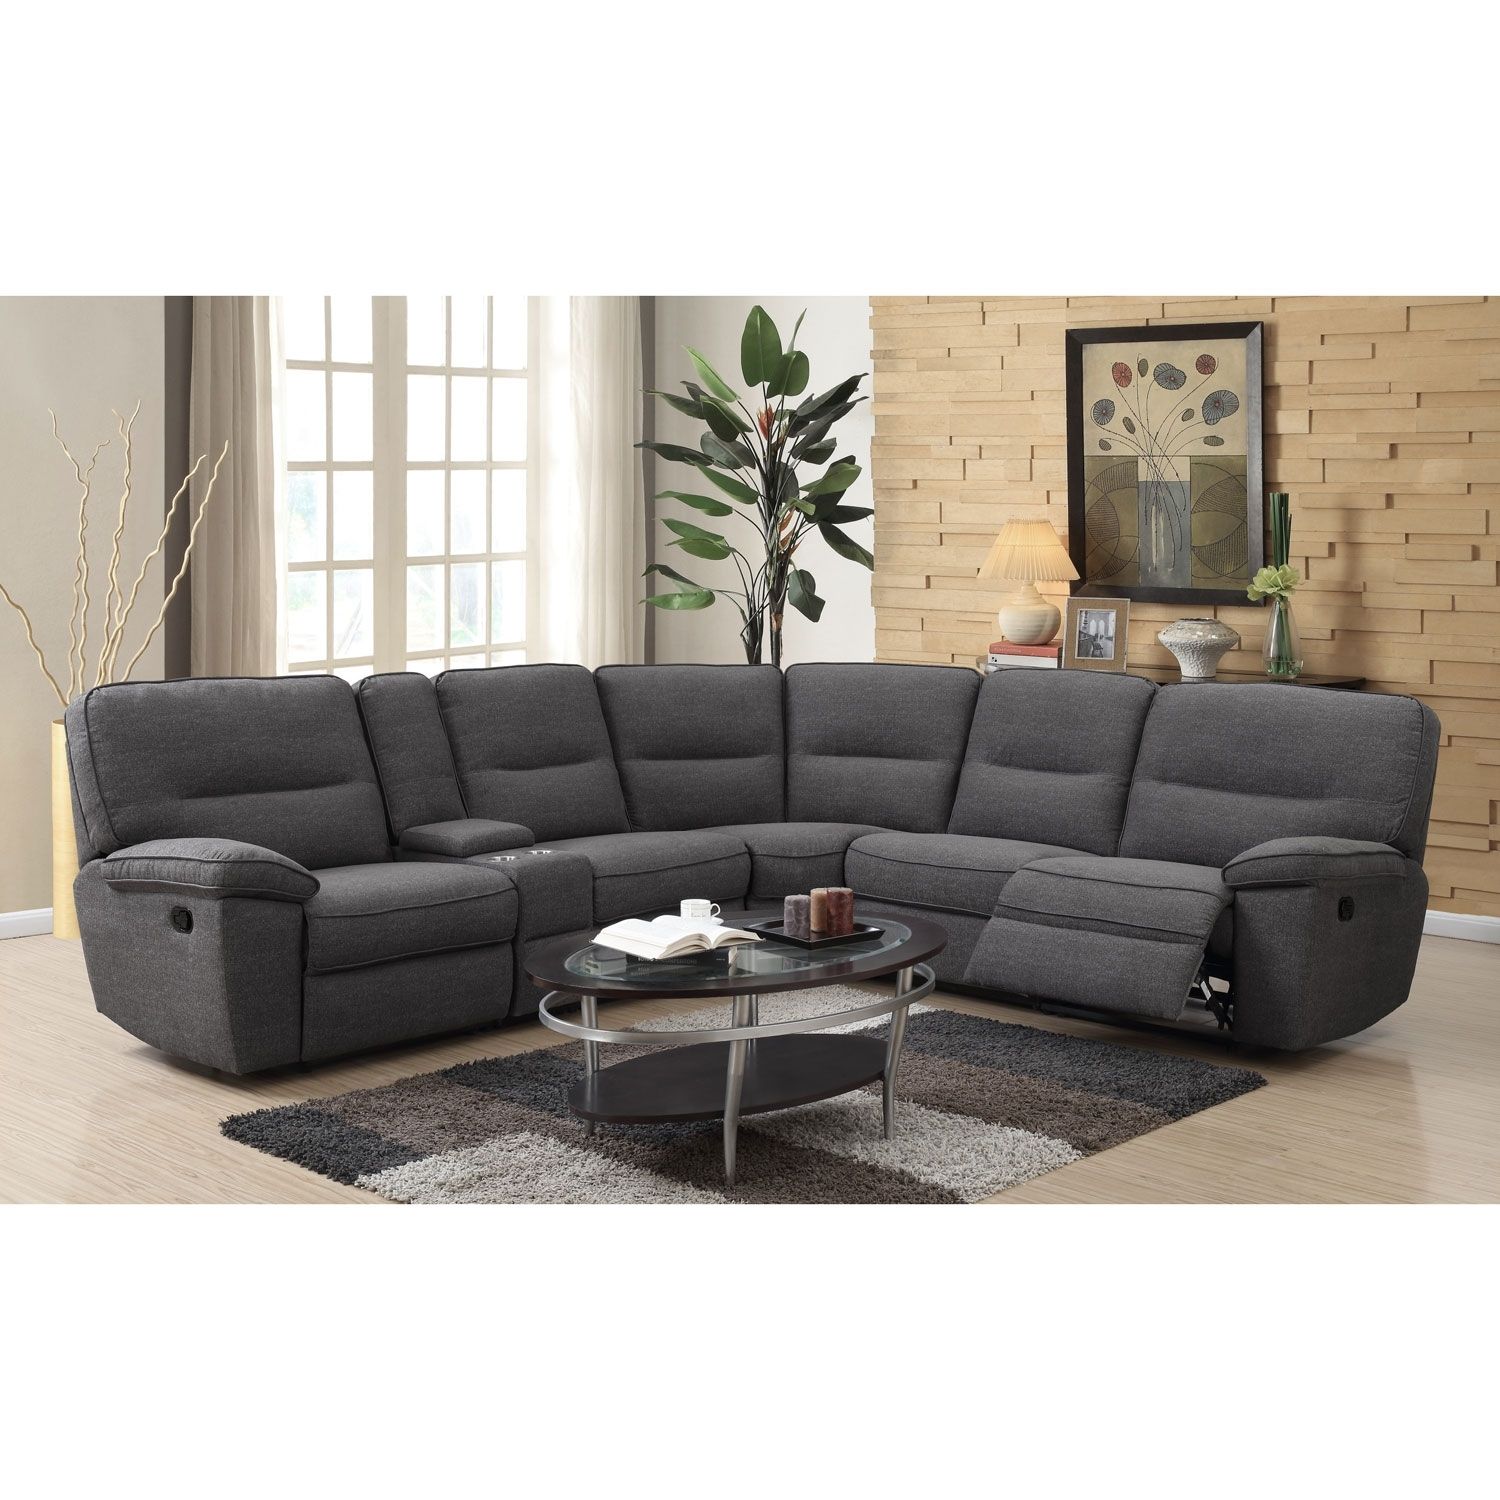 Emerald Home Furnishings Emerald Home Alberta 6 Piece Sectional for Norfolk Grey 6 Piece Sectionals With Raf Chaise (Image 11 of 30)